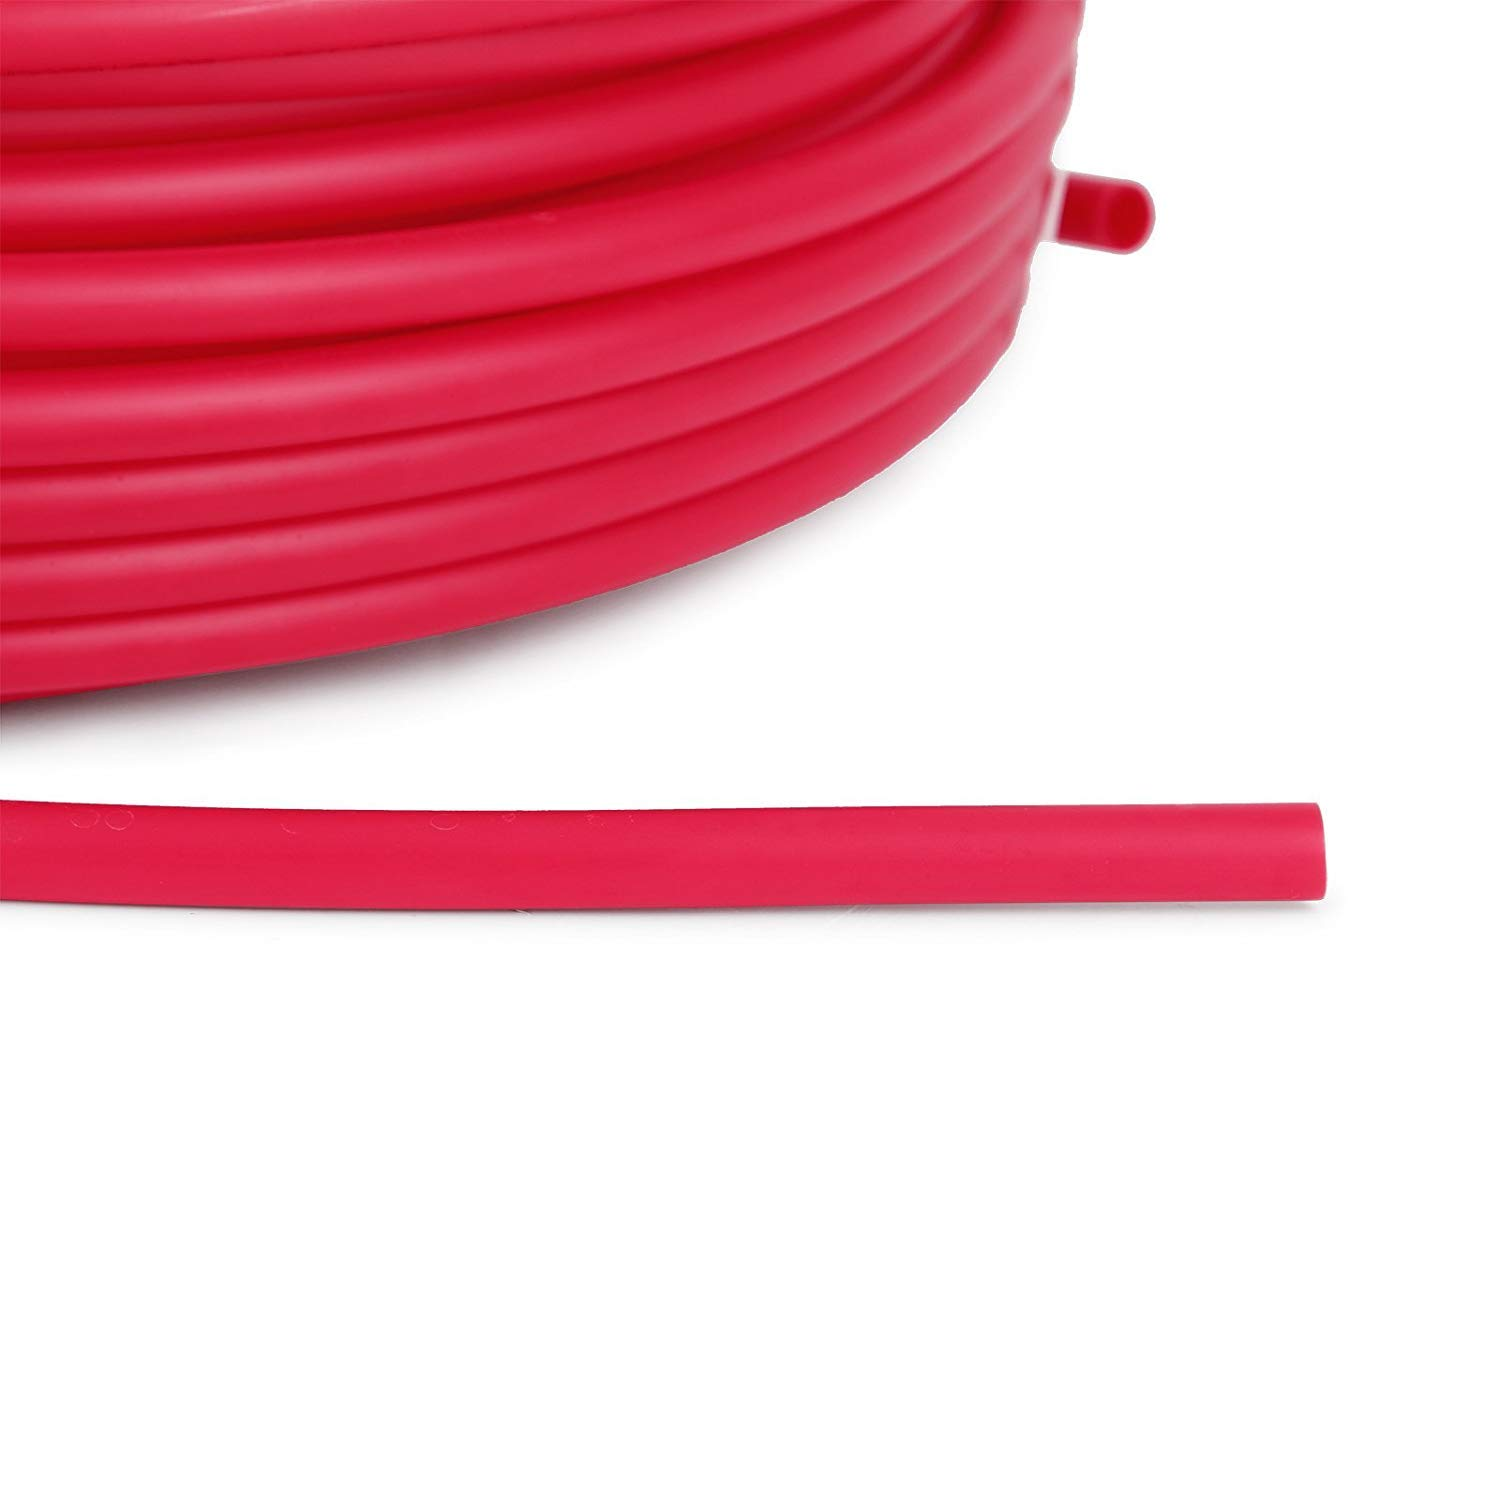 EVOH PEX-B Pipe for Residential Commercial Radiant Floor Heating Pex Pipe 1//2 O2-Barrier, 900Ft//Red Happybuy Oxygen Barrier PEX Tubing 1//2 Inch X 900 Feet Tube Coil